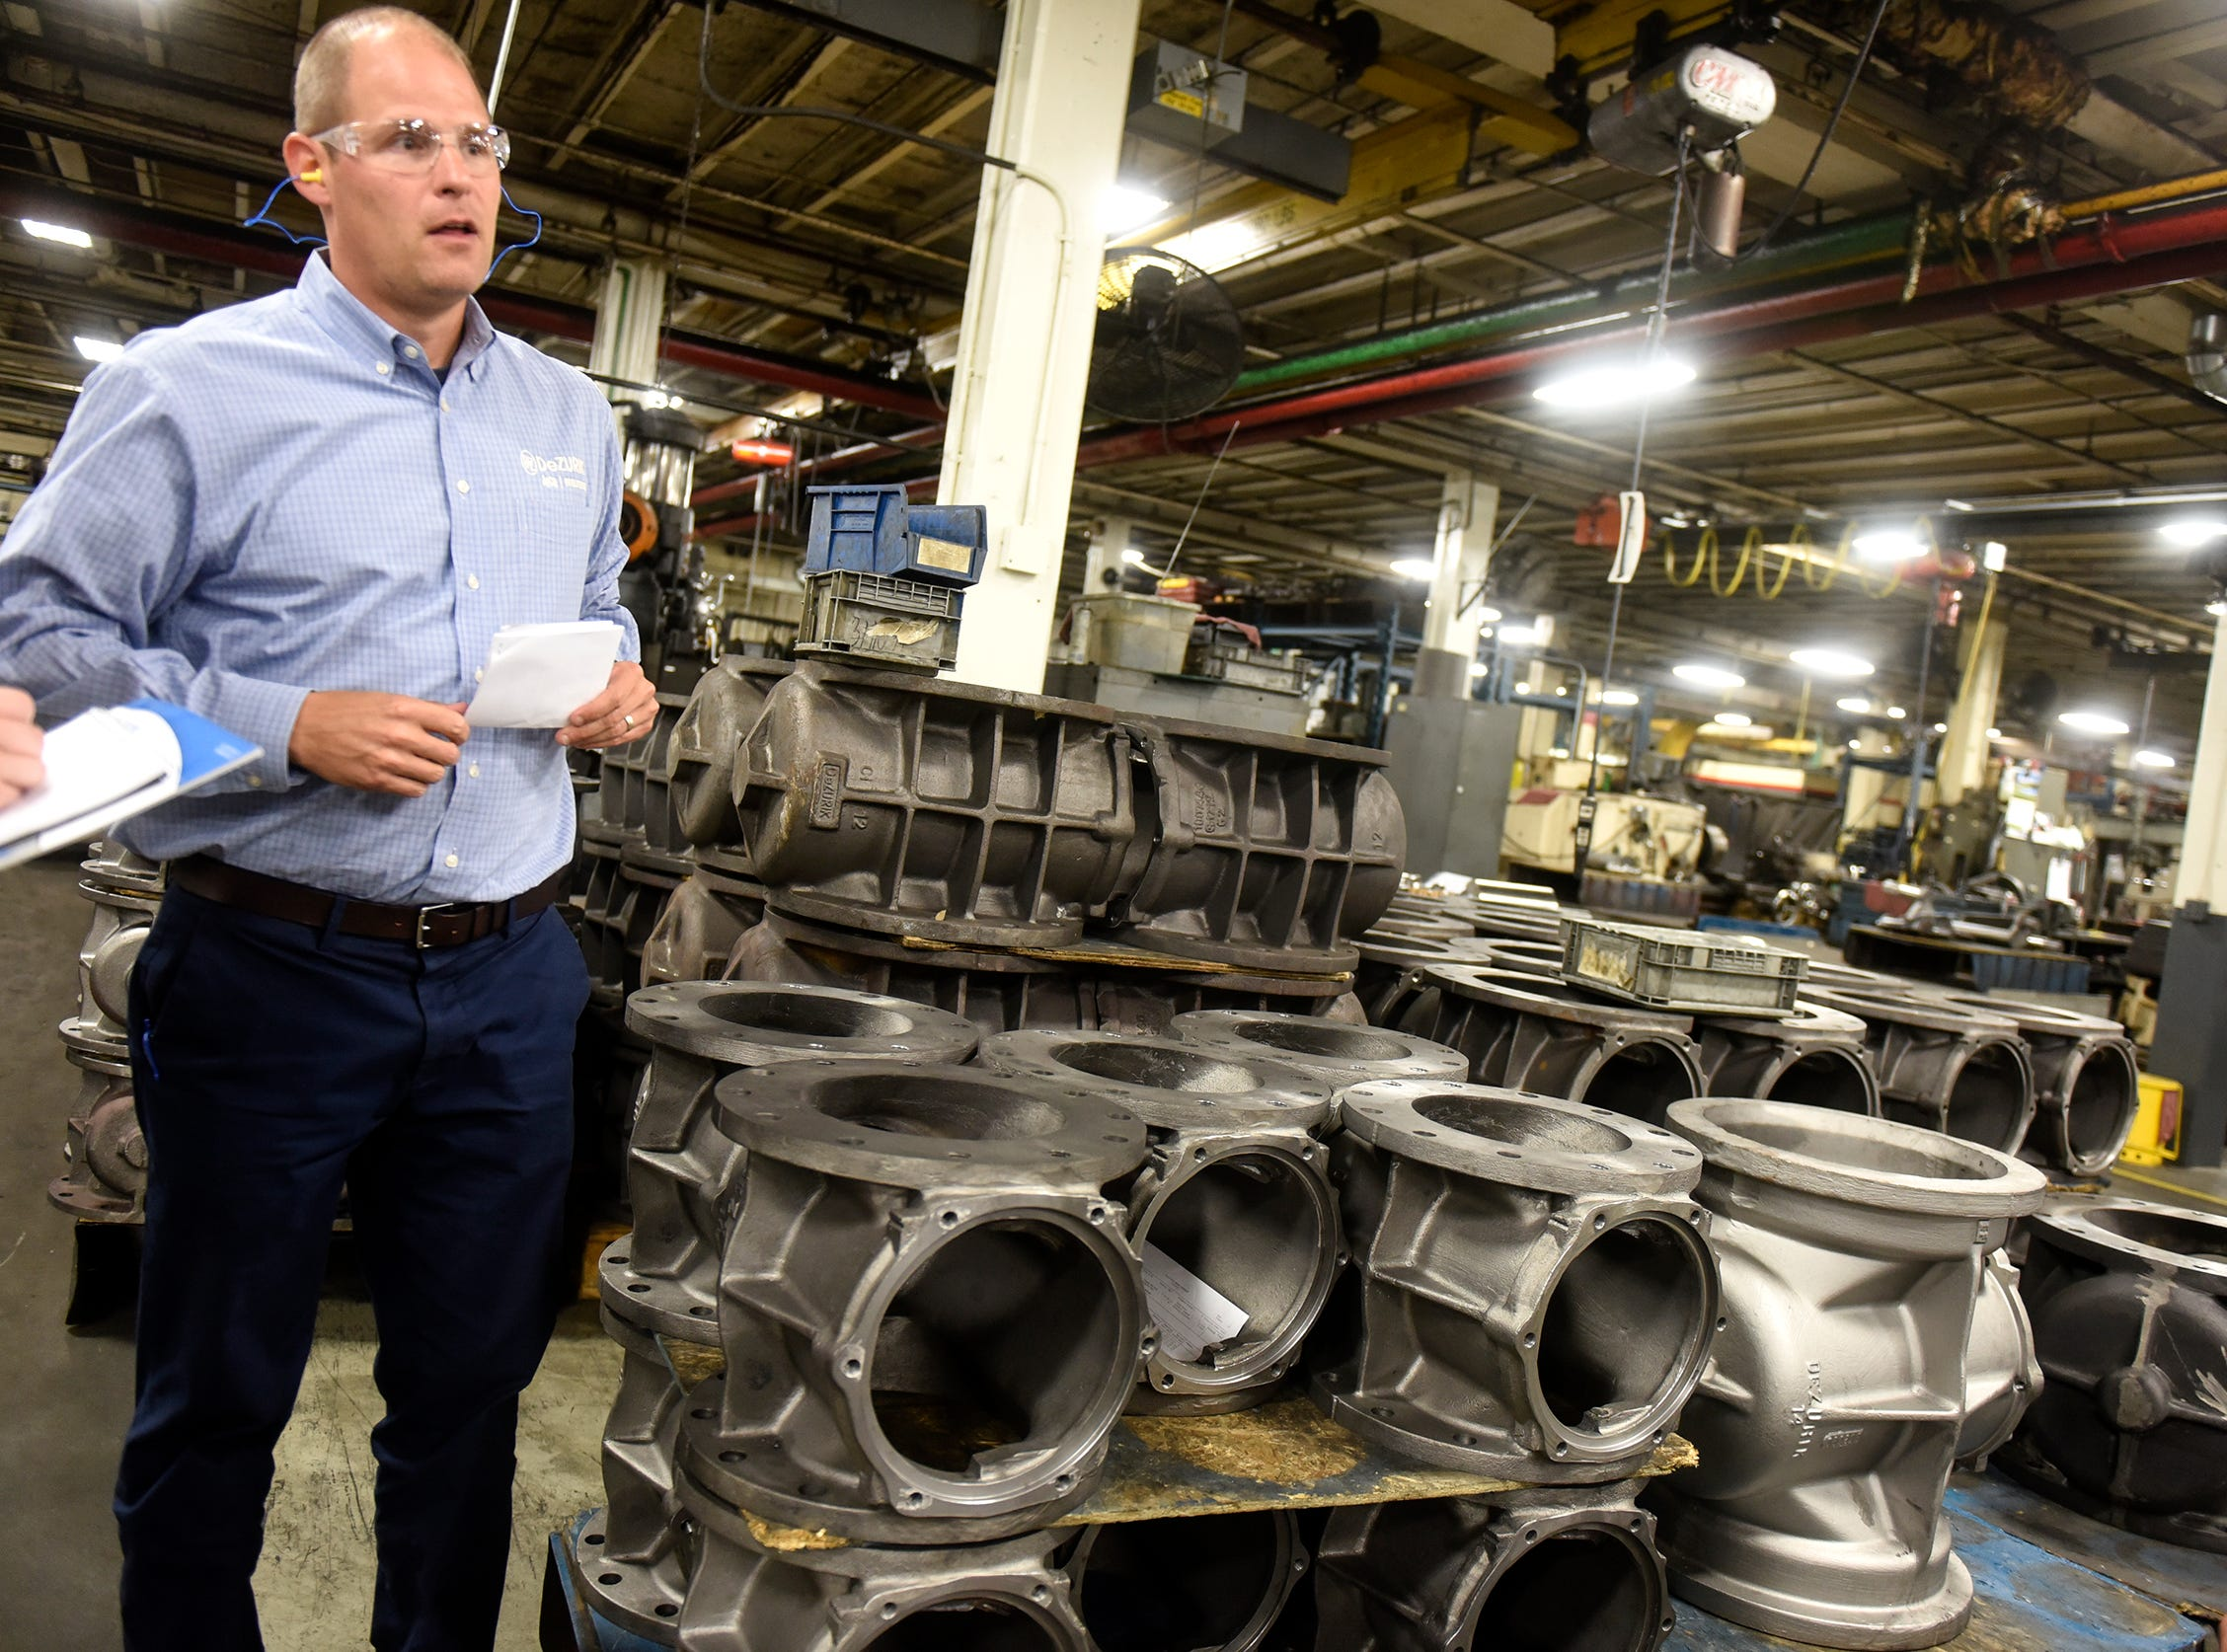 CEO and President Bryan Burns talks about the processes used in manufacturing valves Monday, Sept. 10, at the DeZURIK plant in Sartell.